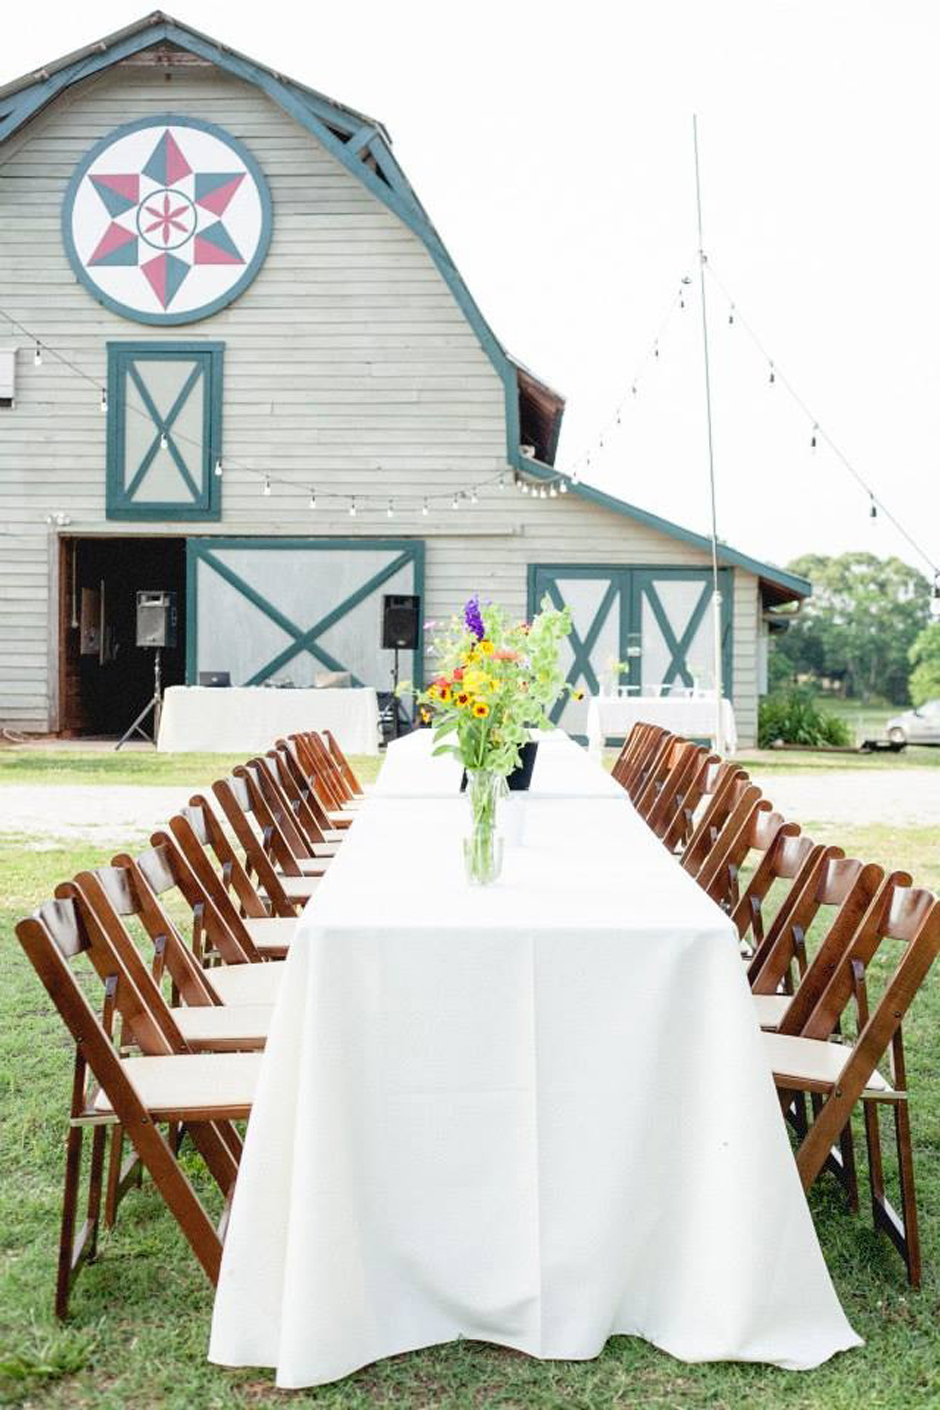 Merveilleux ... Wooden Folding Chairs. Al Fresco Dining At Wedding Reception In Front  Of Barn